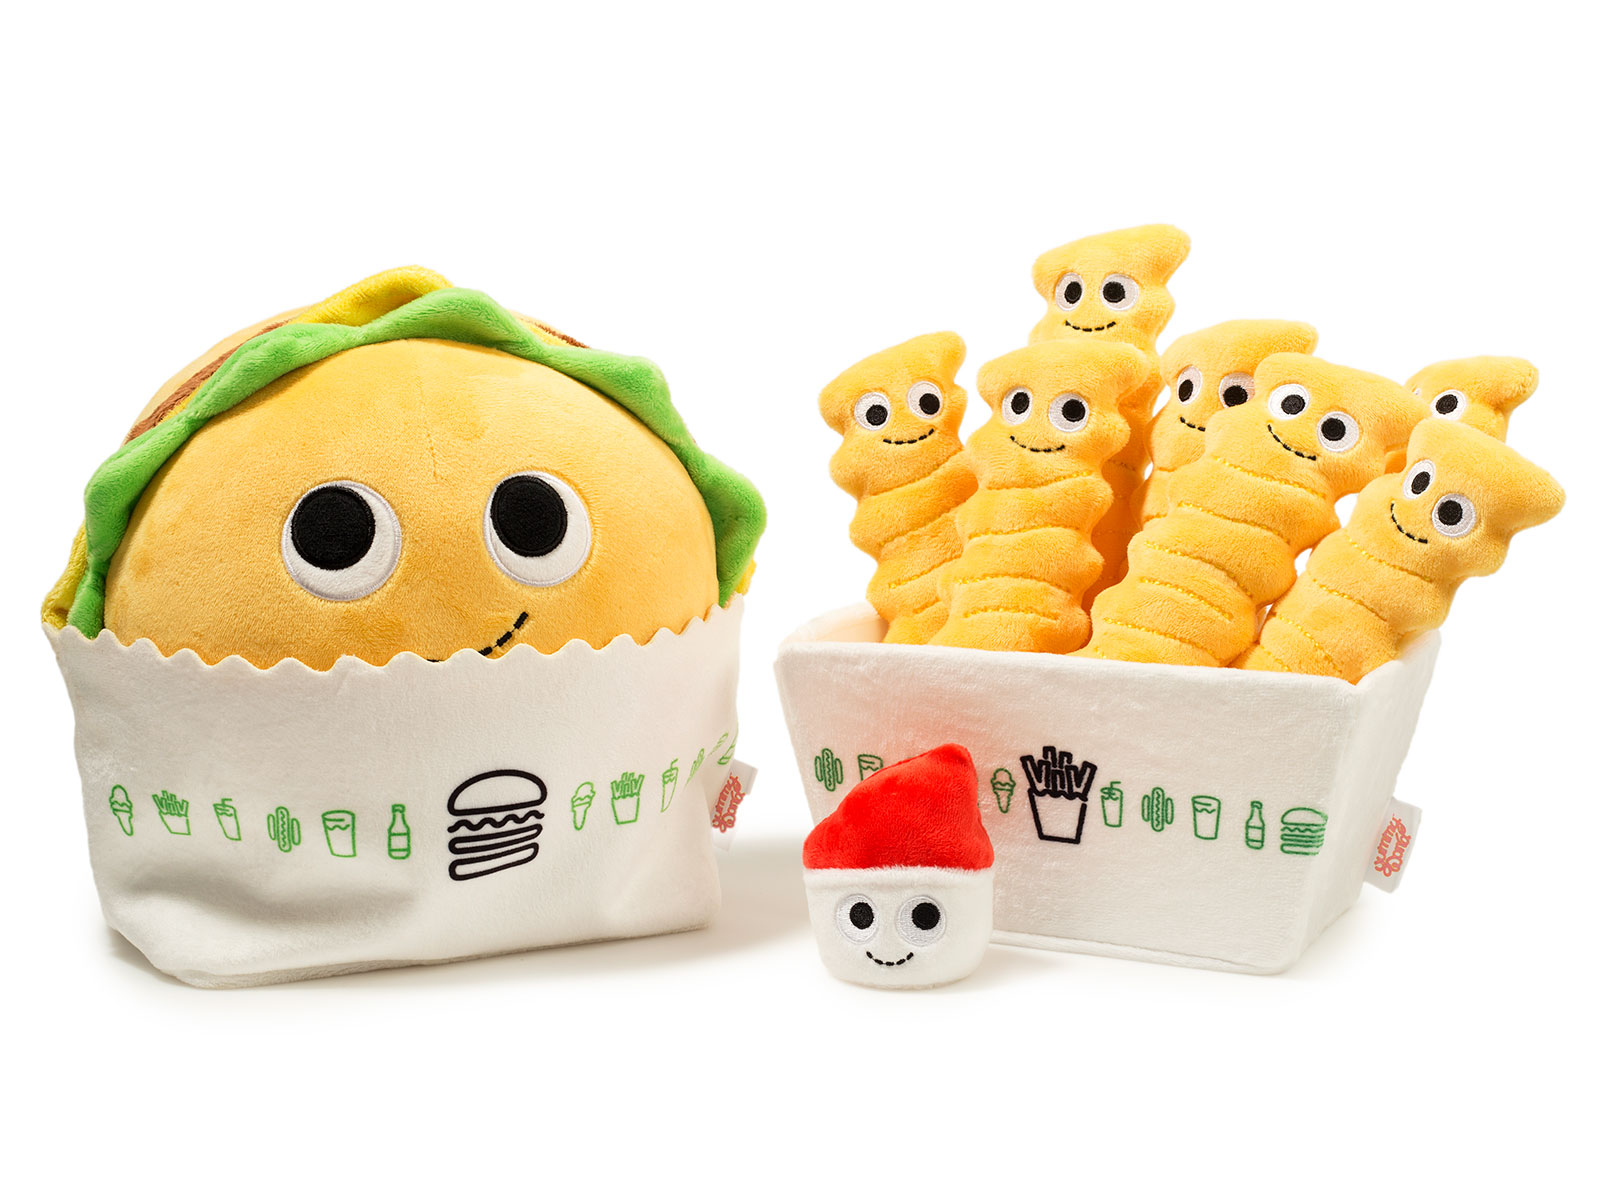 Shake Shack's Plush Burger and Fries Are Deliciously Adorable